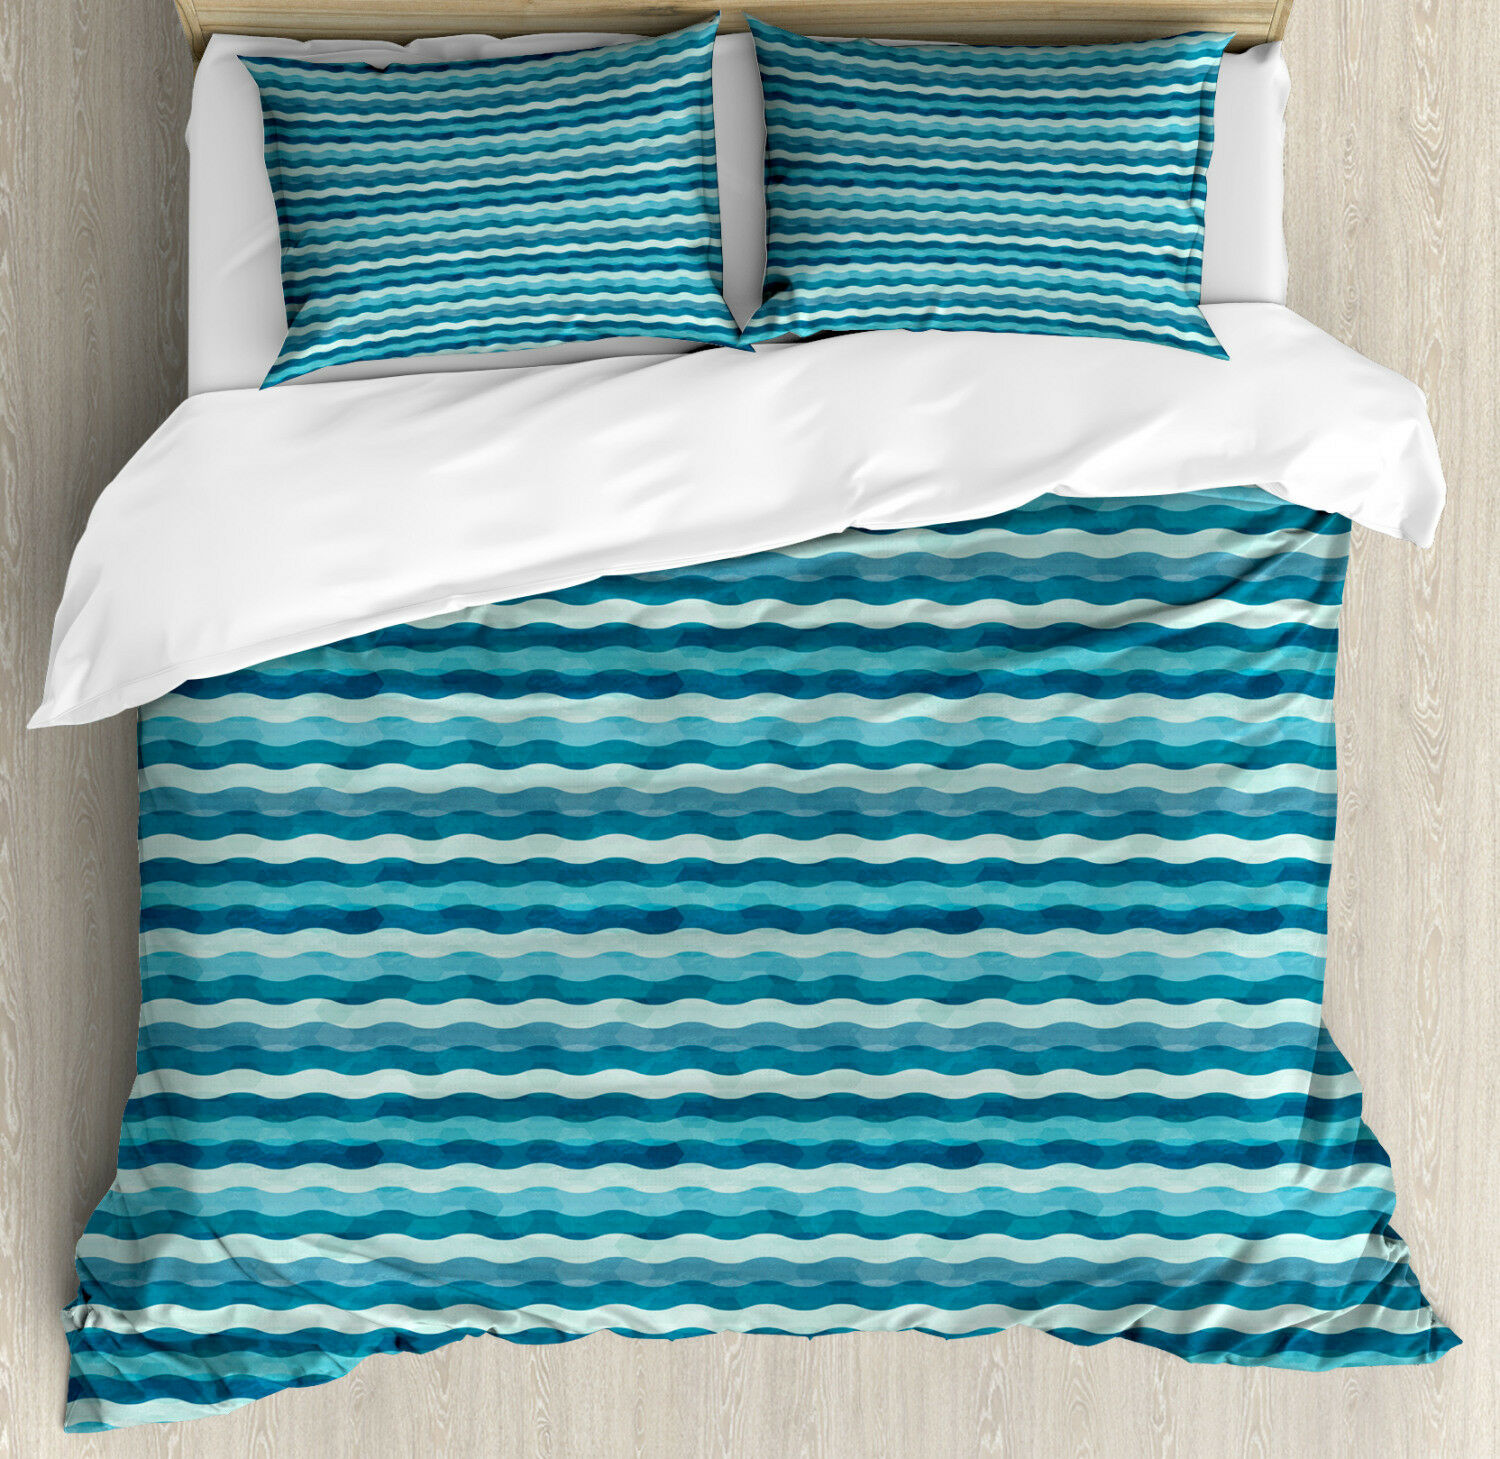 Abstract Duvet Cover Set with Pillow Shams Ocean Waves Aquatic Print